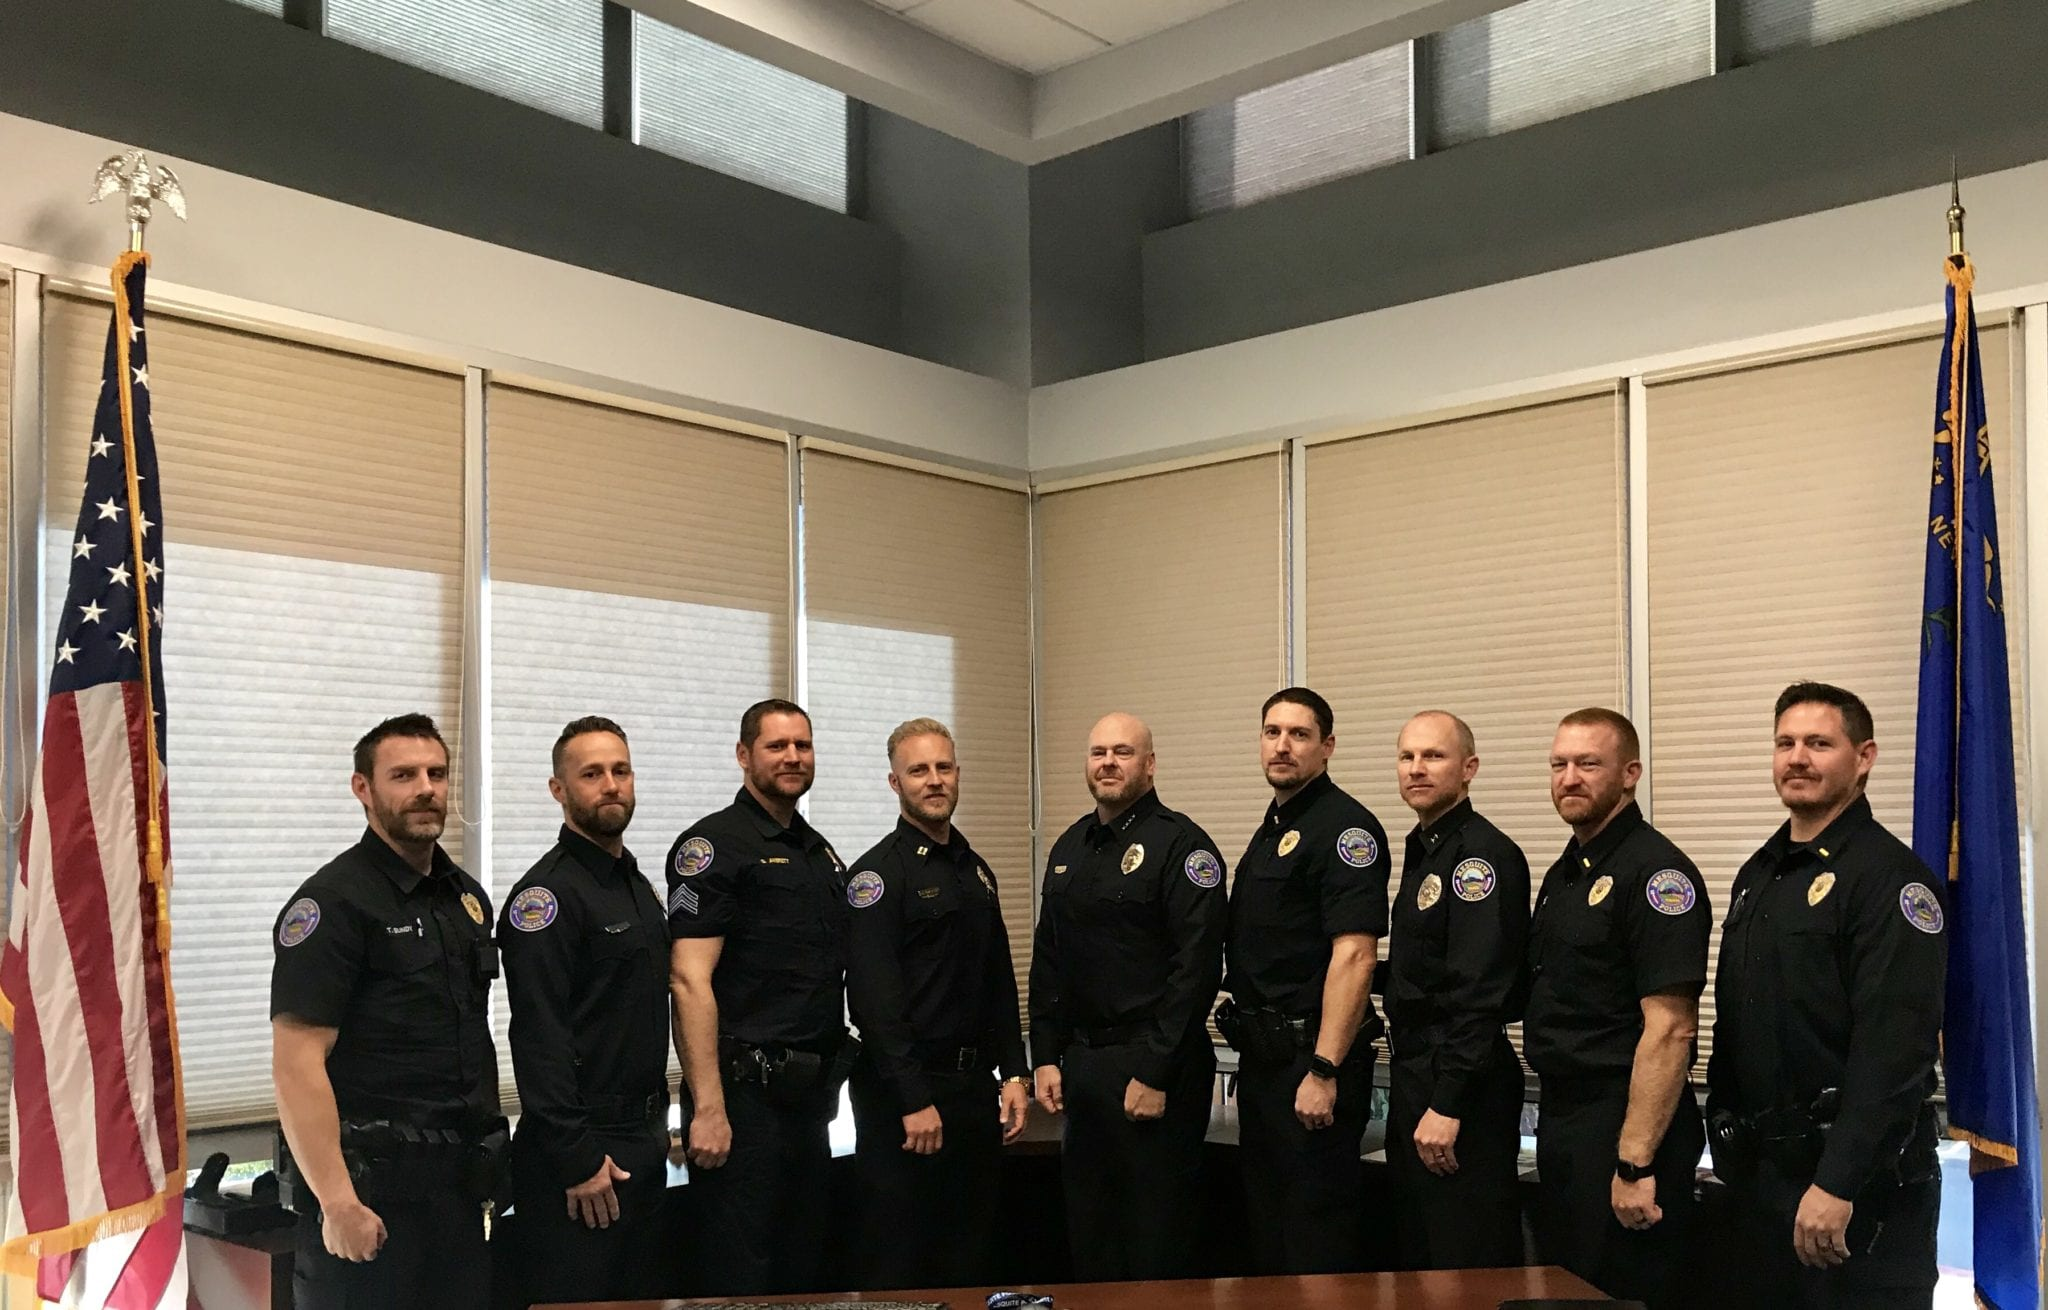 Mesquite Police No Shave November Fundraiser Comes to a Finish